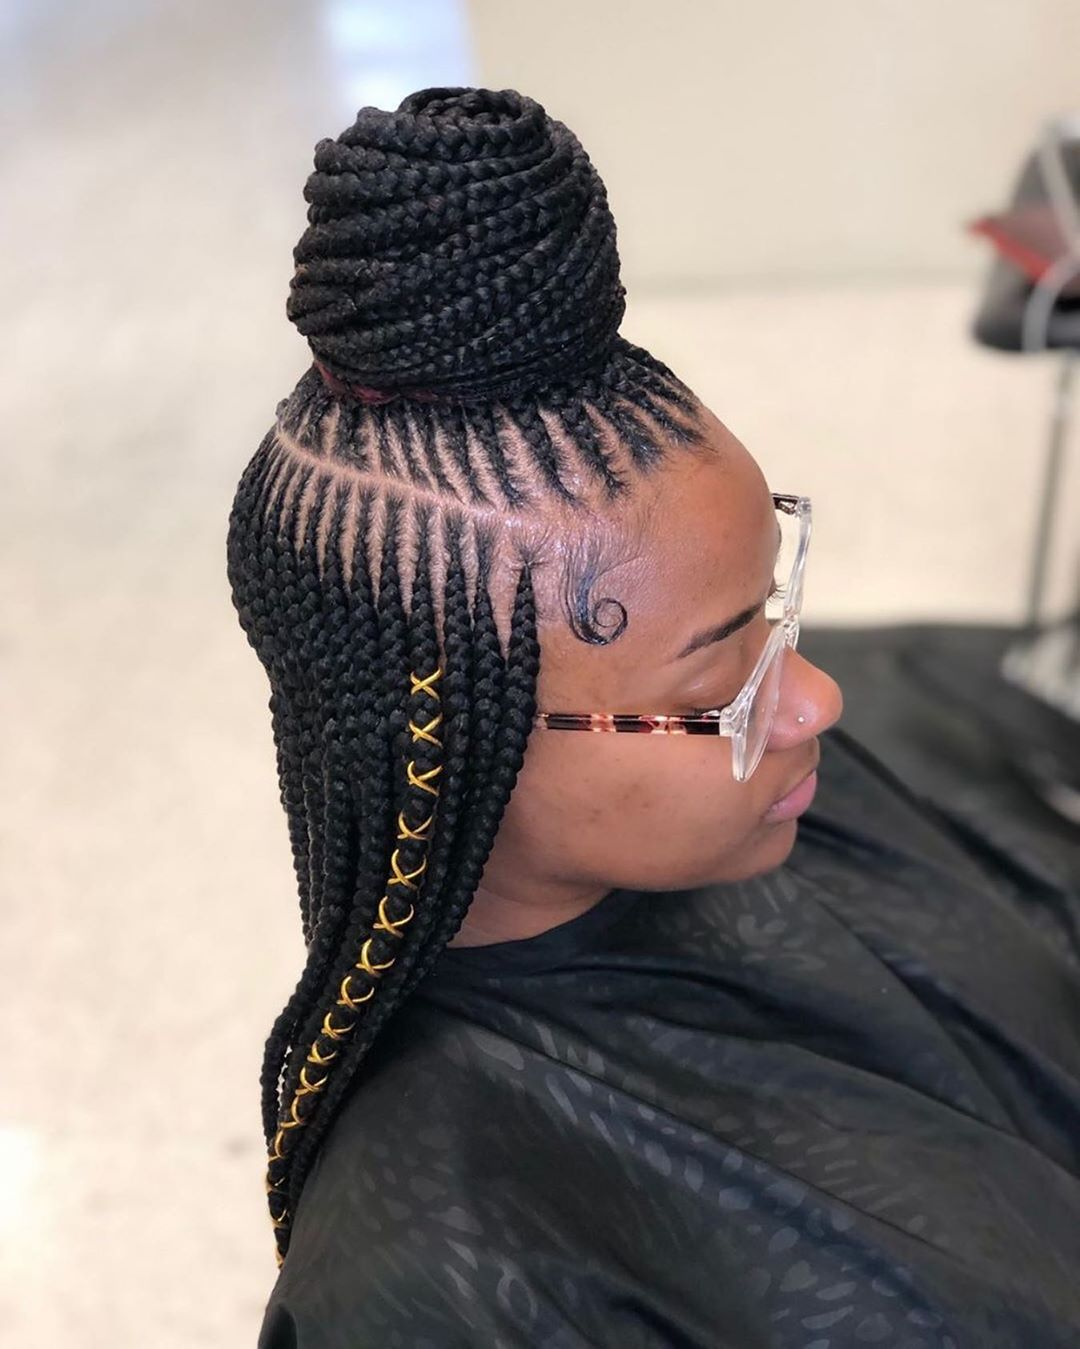 Best Hairstylists And Barbers On Instagram Follow Greenville Nc Braider Shawtstyles Haircrush Hot Hair Styles Braids For Short Hair Curly Hair Styles